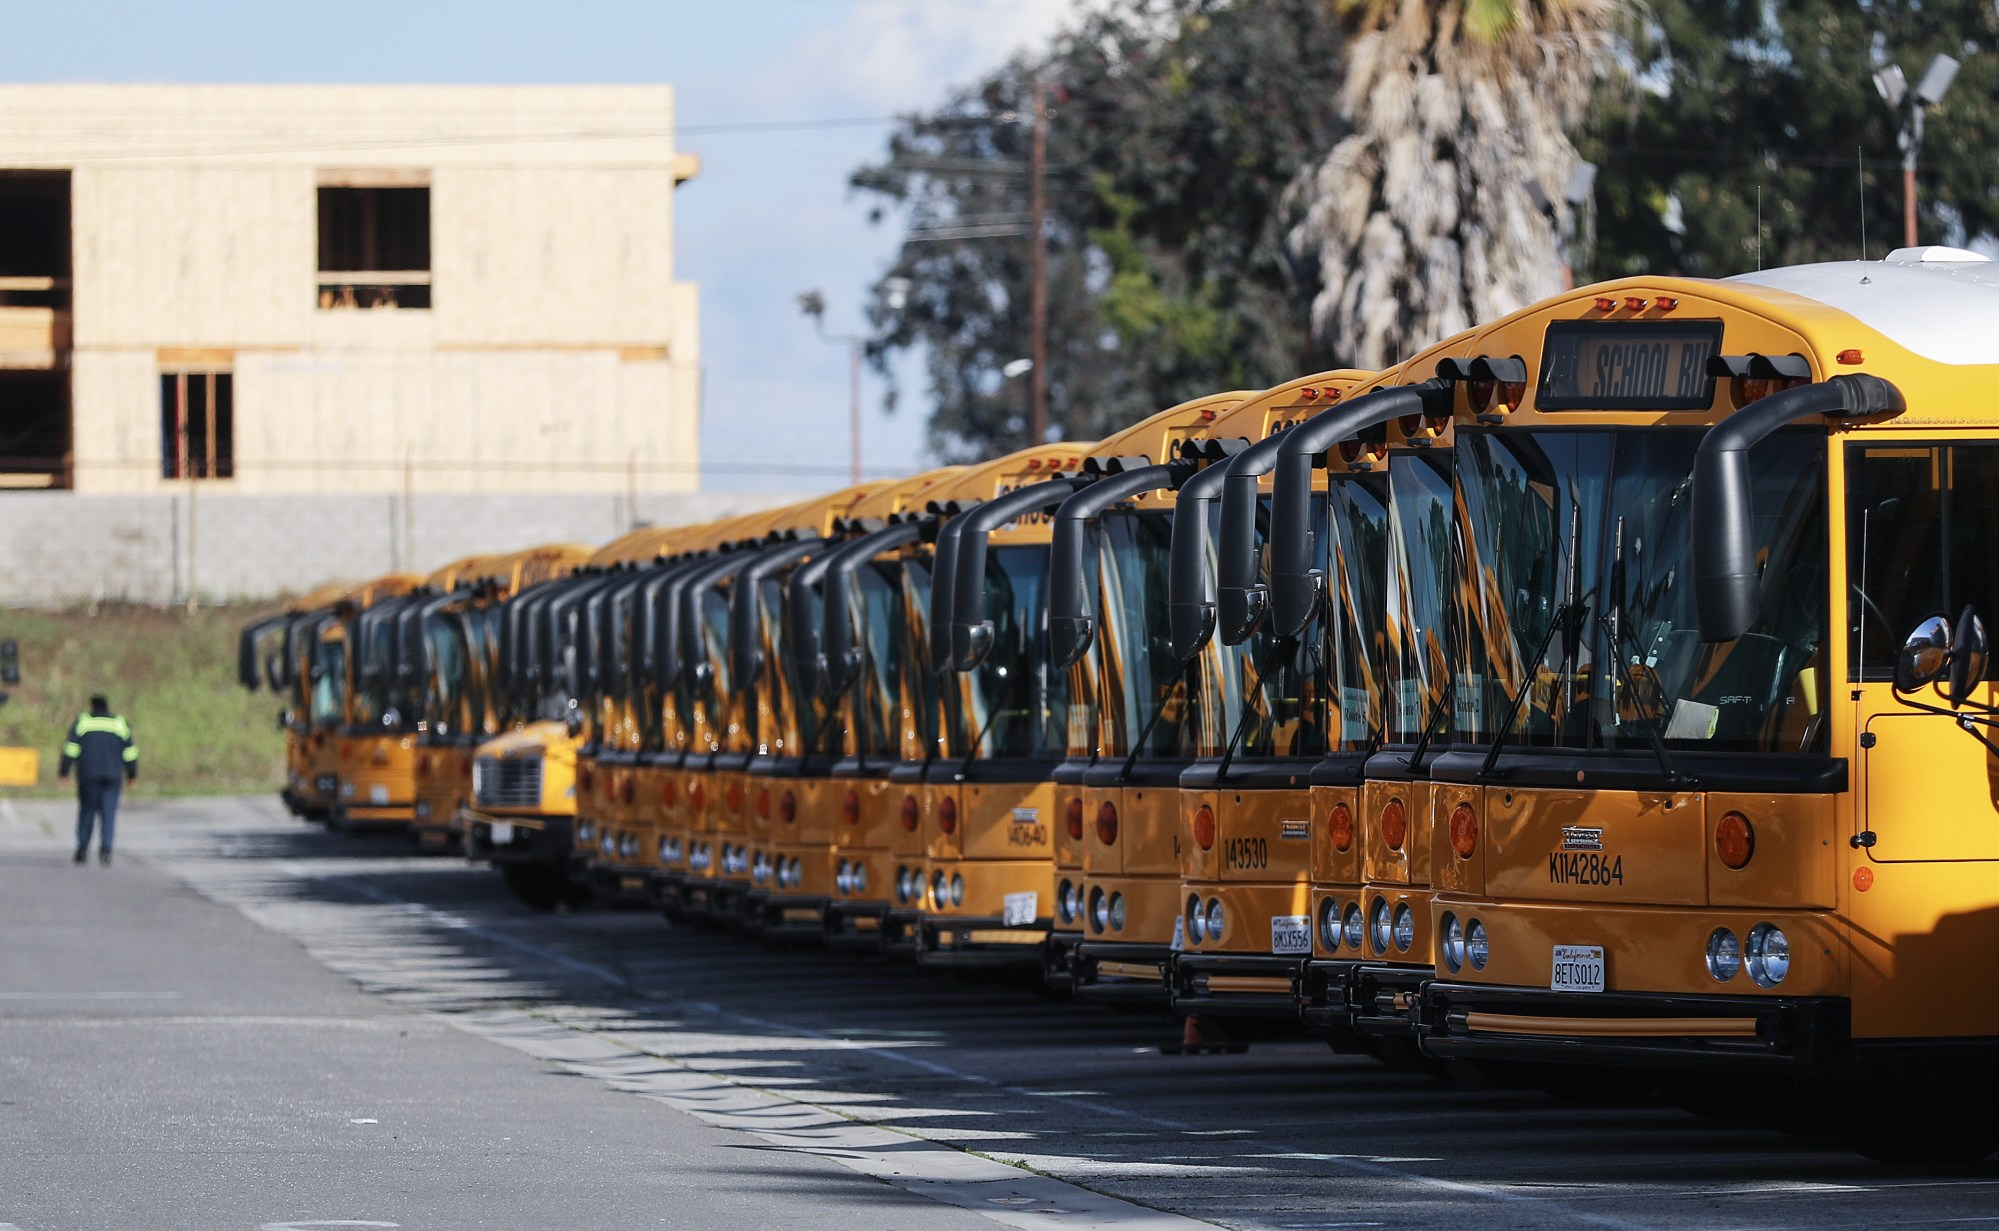 School buses are seen parked in a lot while schools schools stay closed in response to the coronavirus outbreak, on March 17, 2020, in Gardena. (Mario Tama/Getty Images)